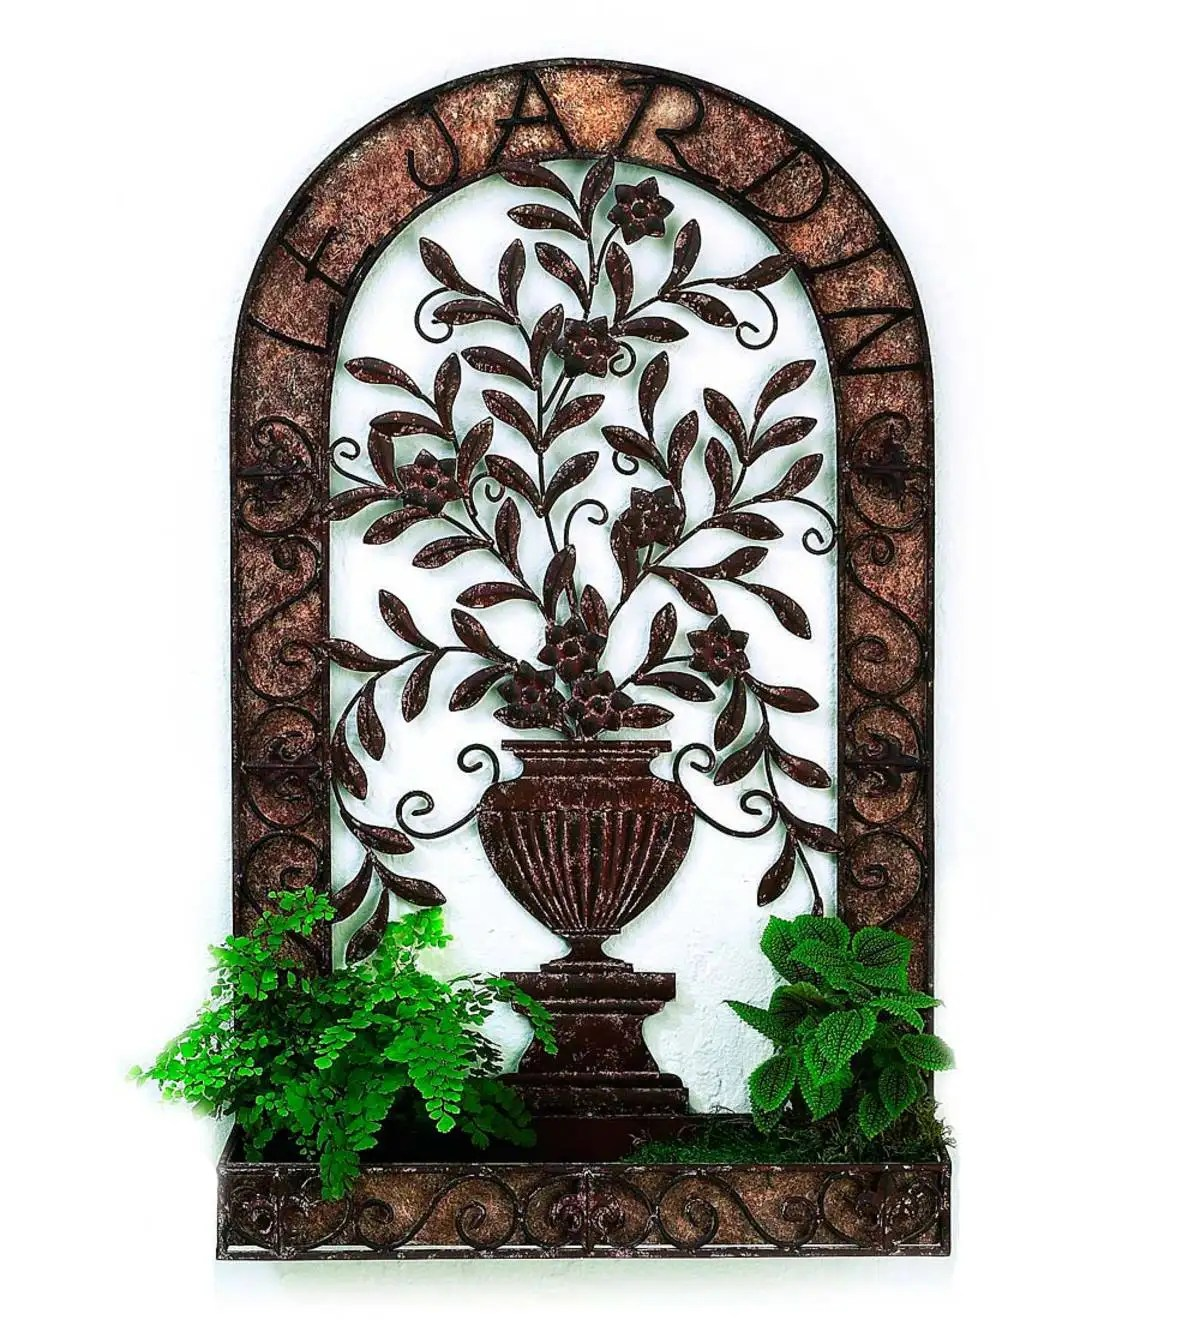 Iron Floral Design Wall Planter | Wind and Weather on Iron Wall Vases id=36391